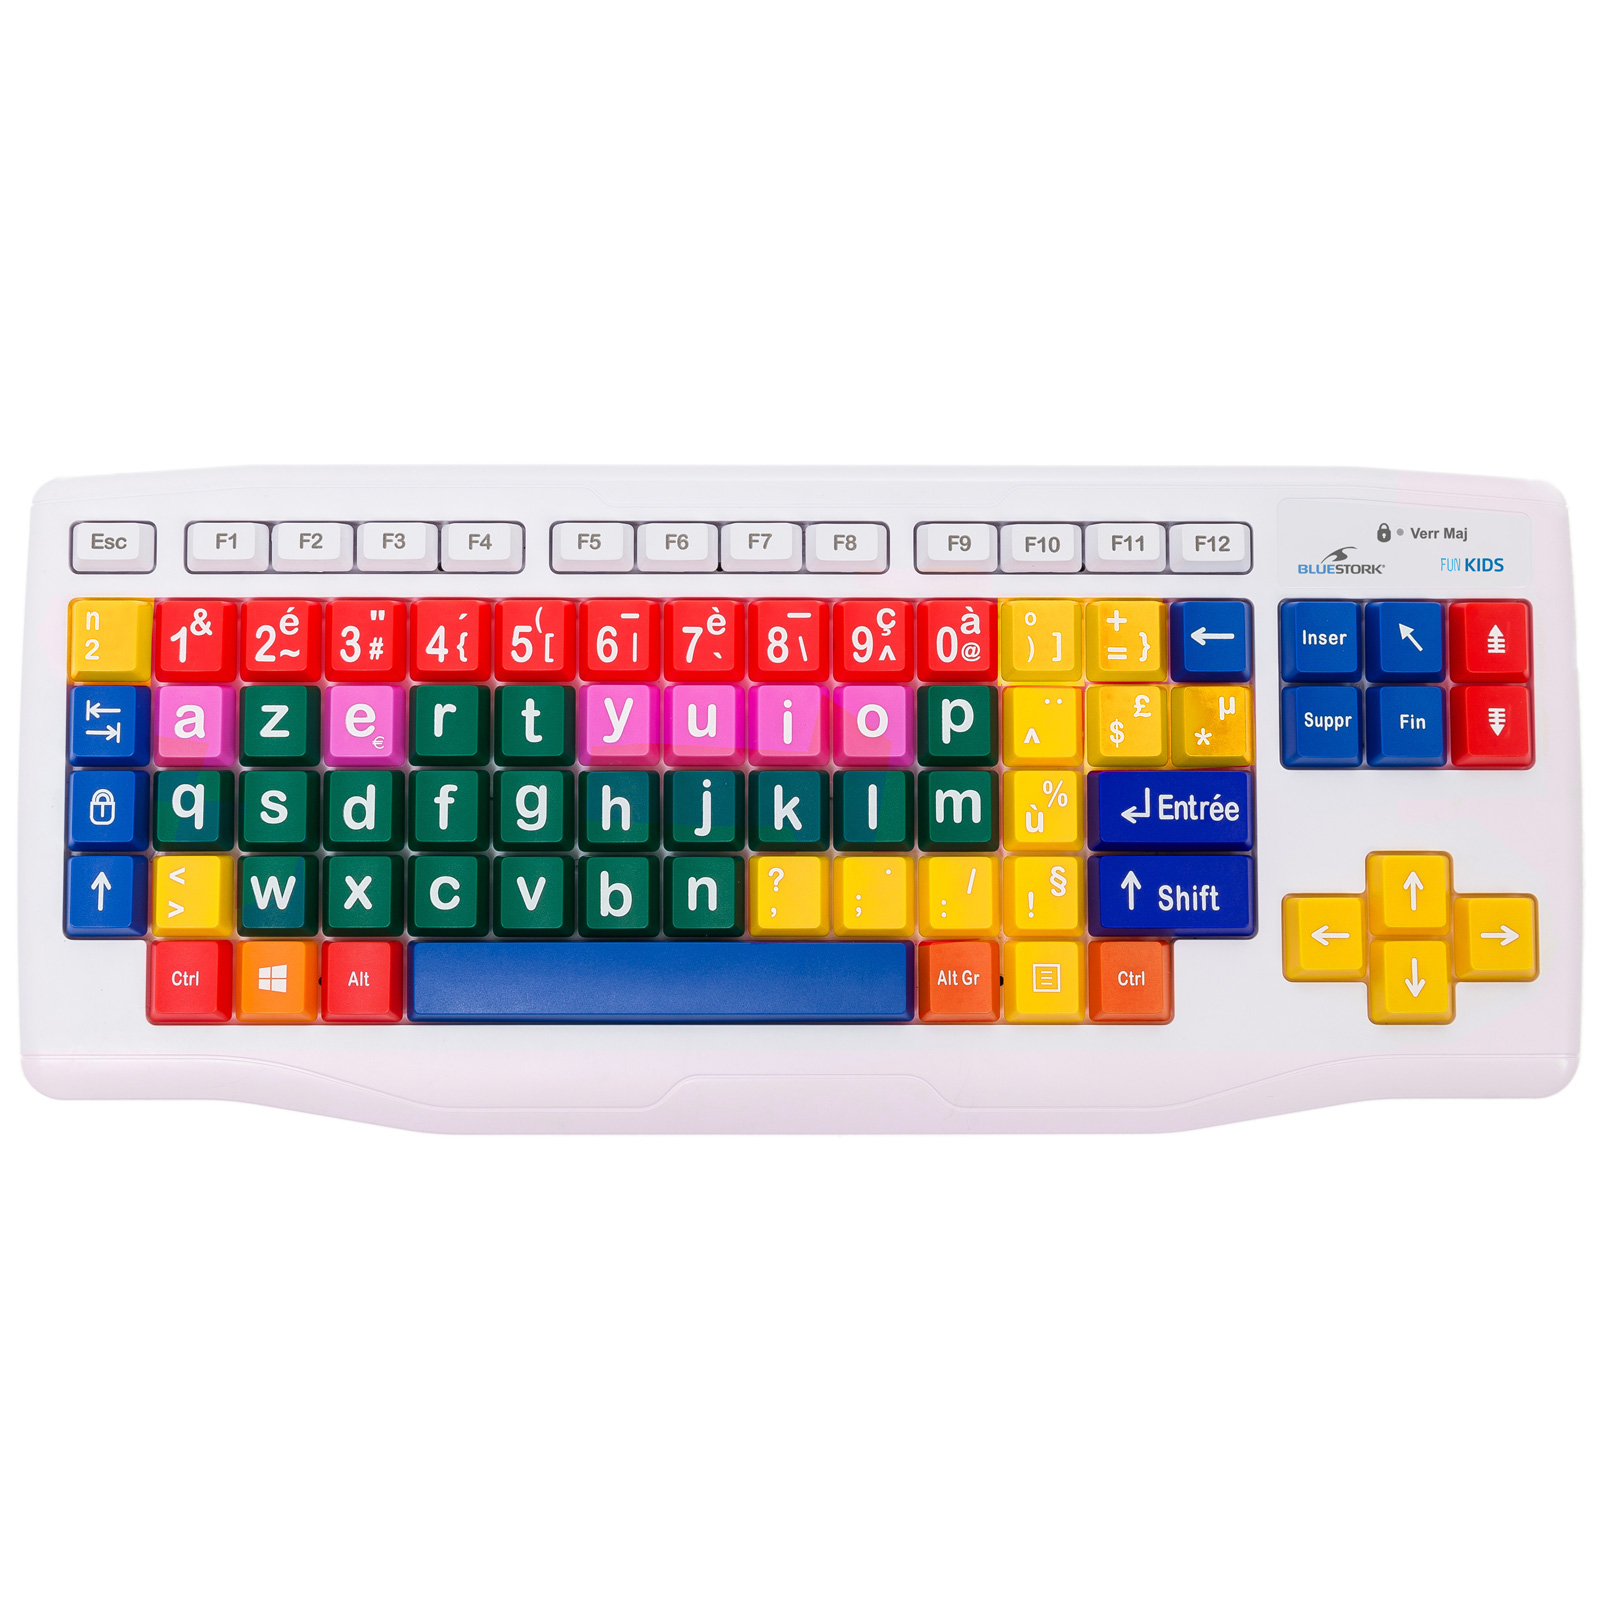 bluestork fun kids keyboard  bs  vente clavier pc sur ldlc com